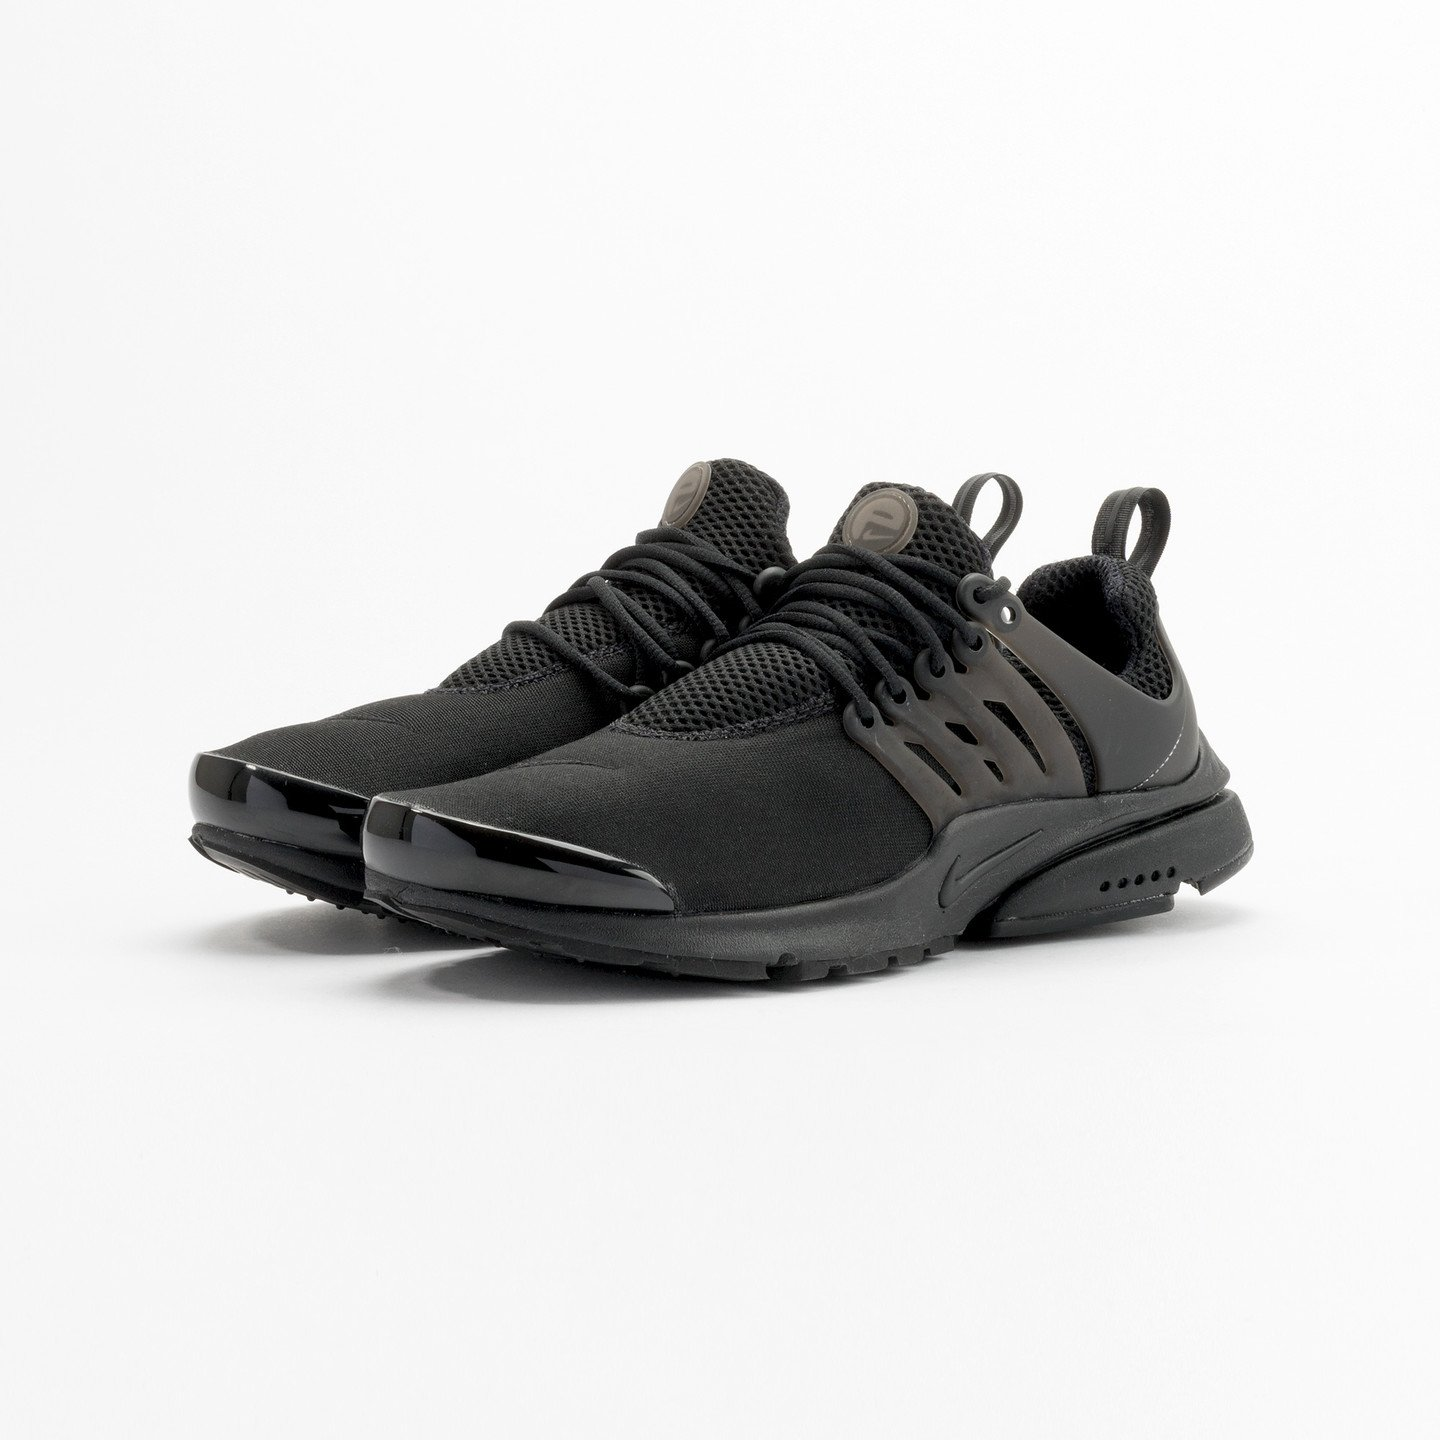 Nike Air Presto Triple Black 848132-009-45